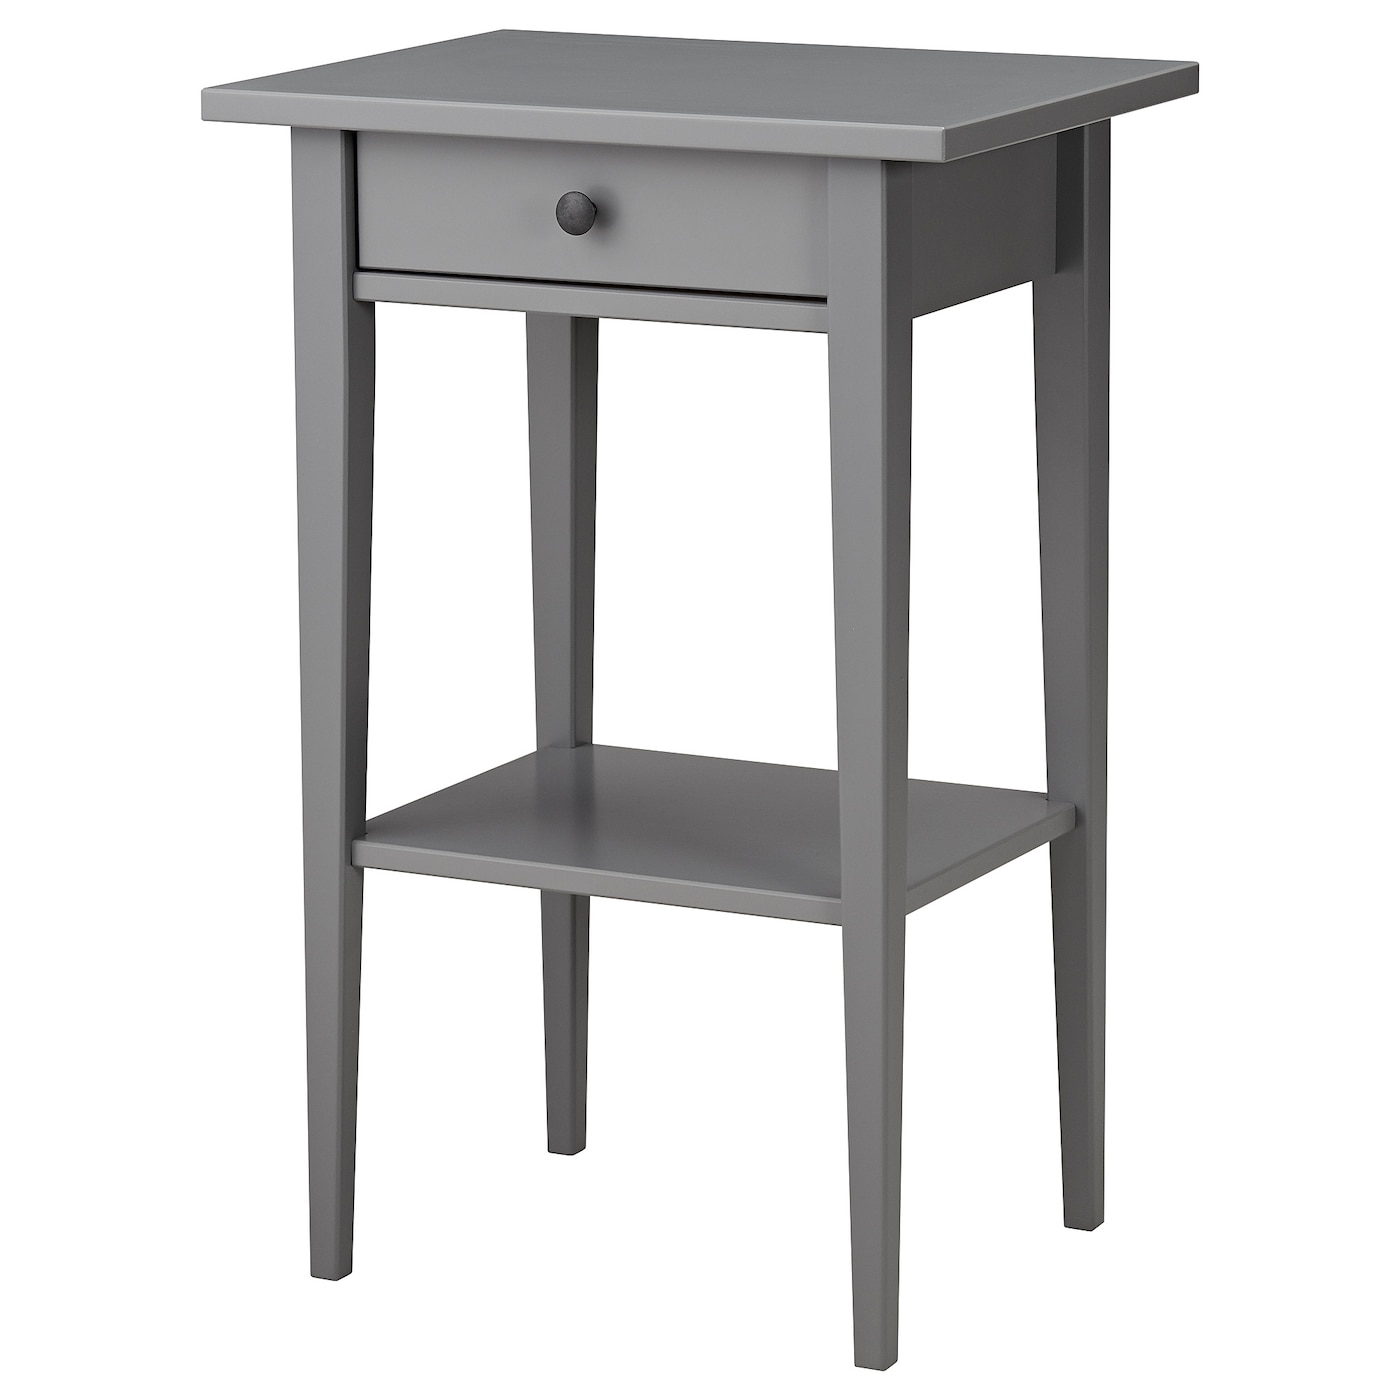 Ikea Hemnes Bedside Table Made Of Solid Wood Which Is A Hardwearing And Warm Natural